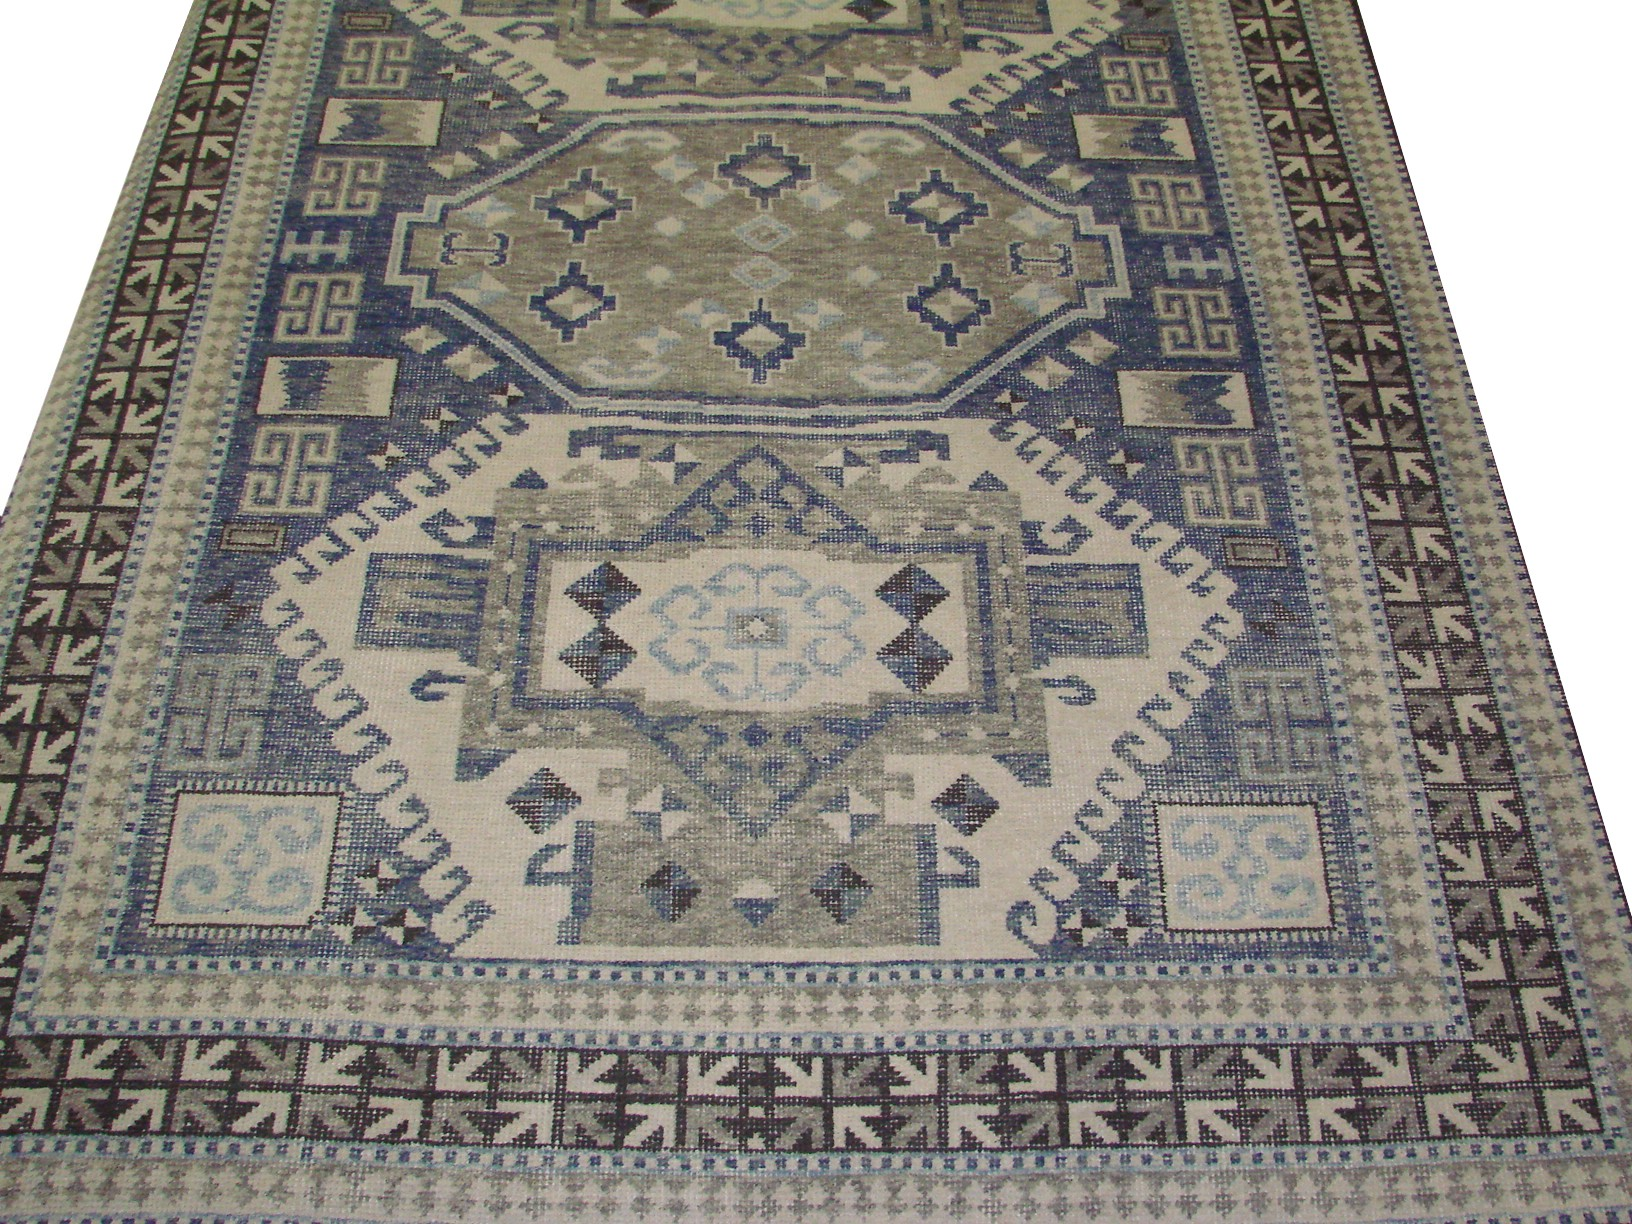 9x12 Oushak Hand Knotted Wool Area Rug - MR021914